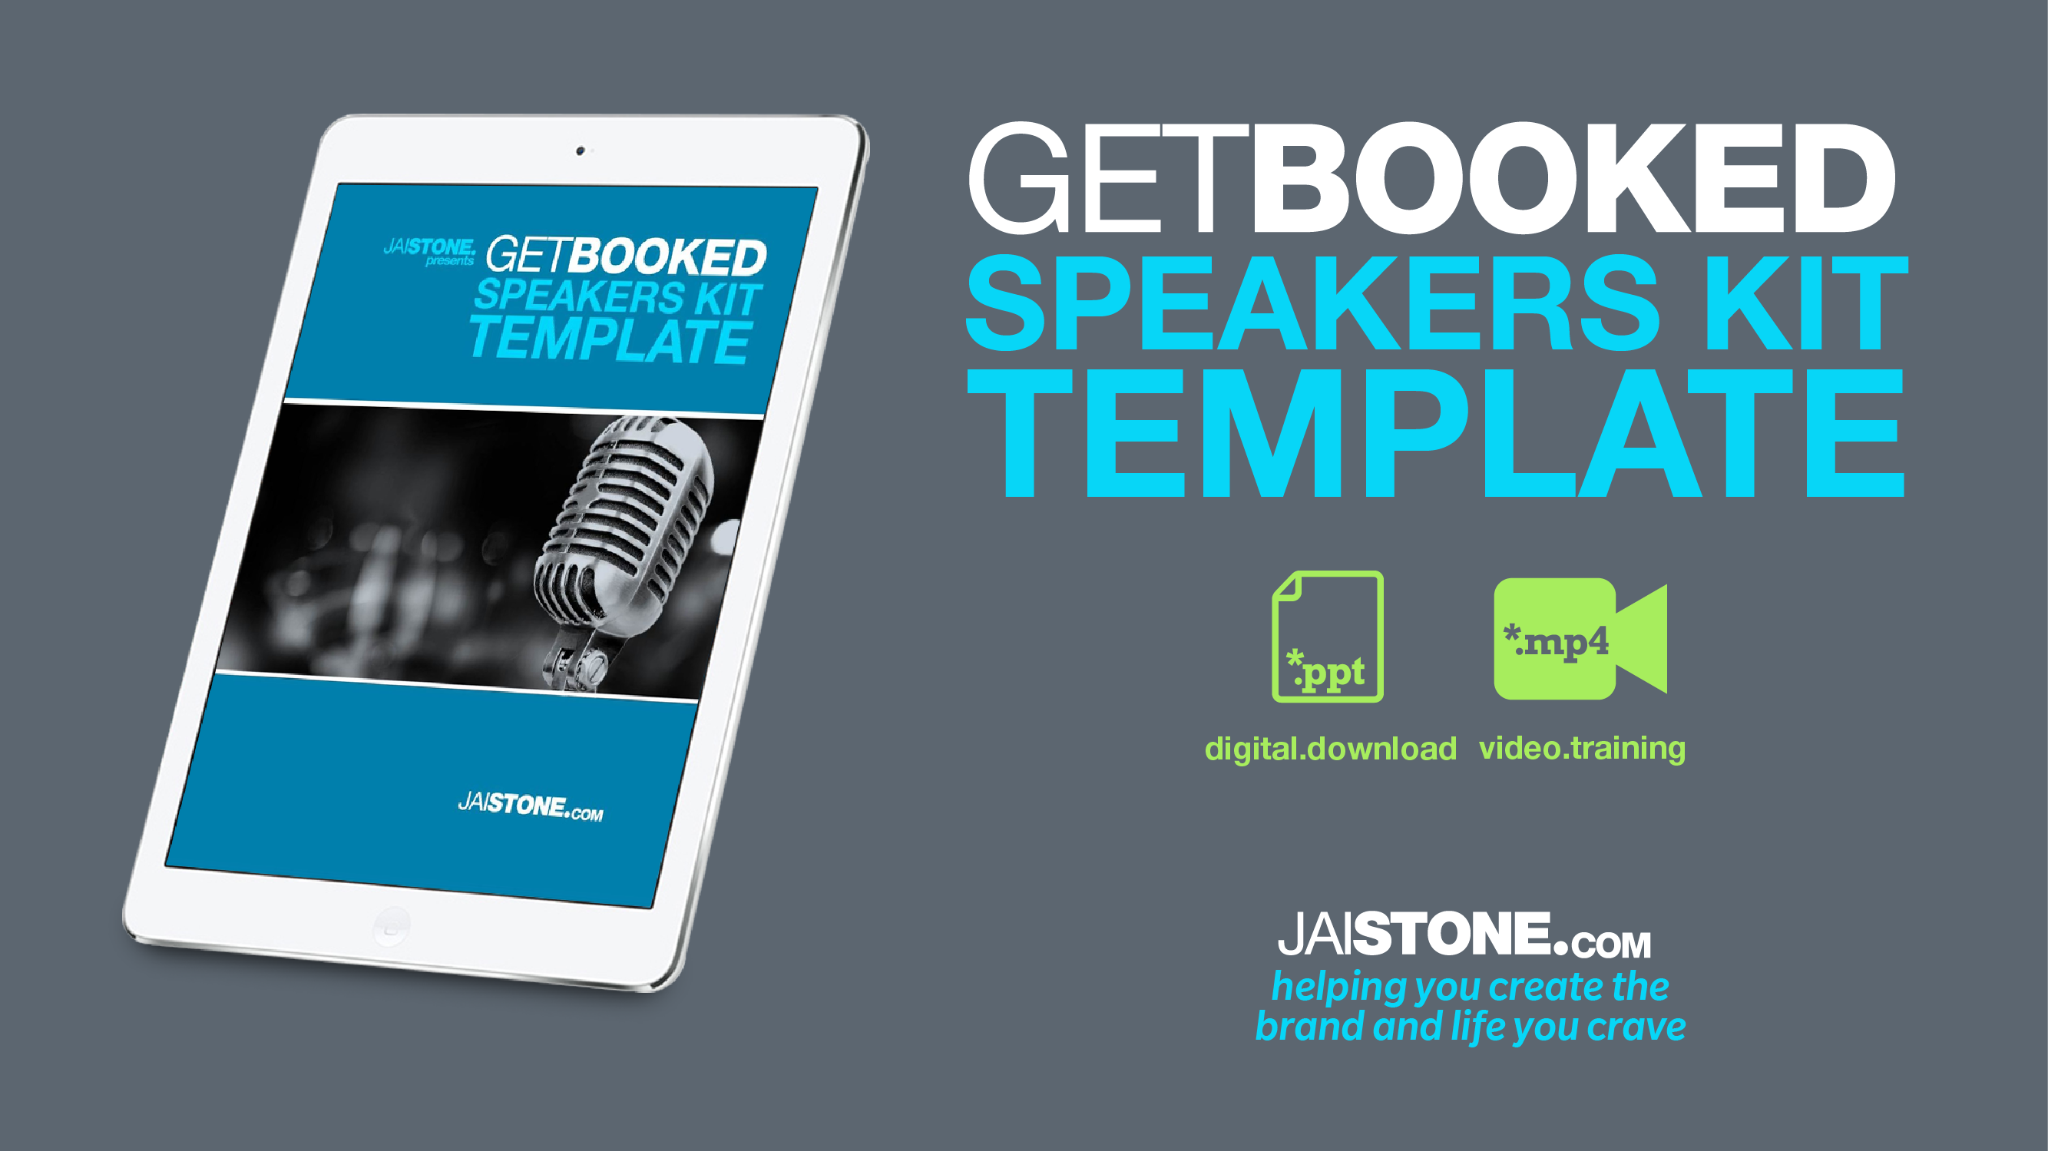 Get Booked Speakers Kit Template (designed in POWERPOINT)